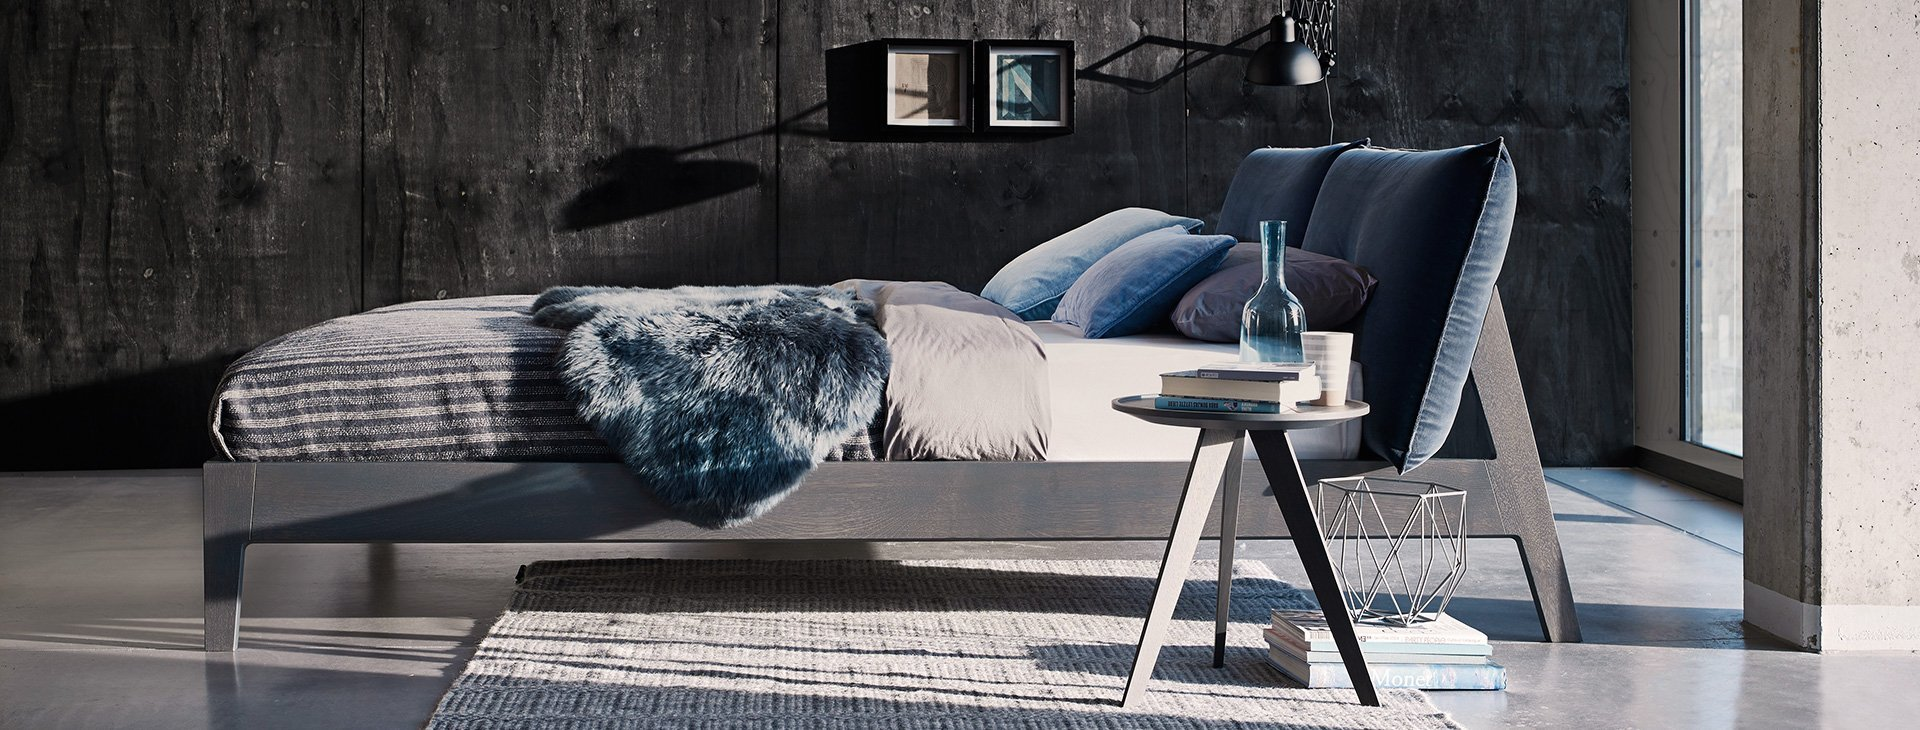 m ller design ihre brands im stilwerk berlin. Black Bedroom Furniture Sets. Home Design Ideas